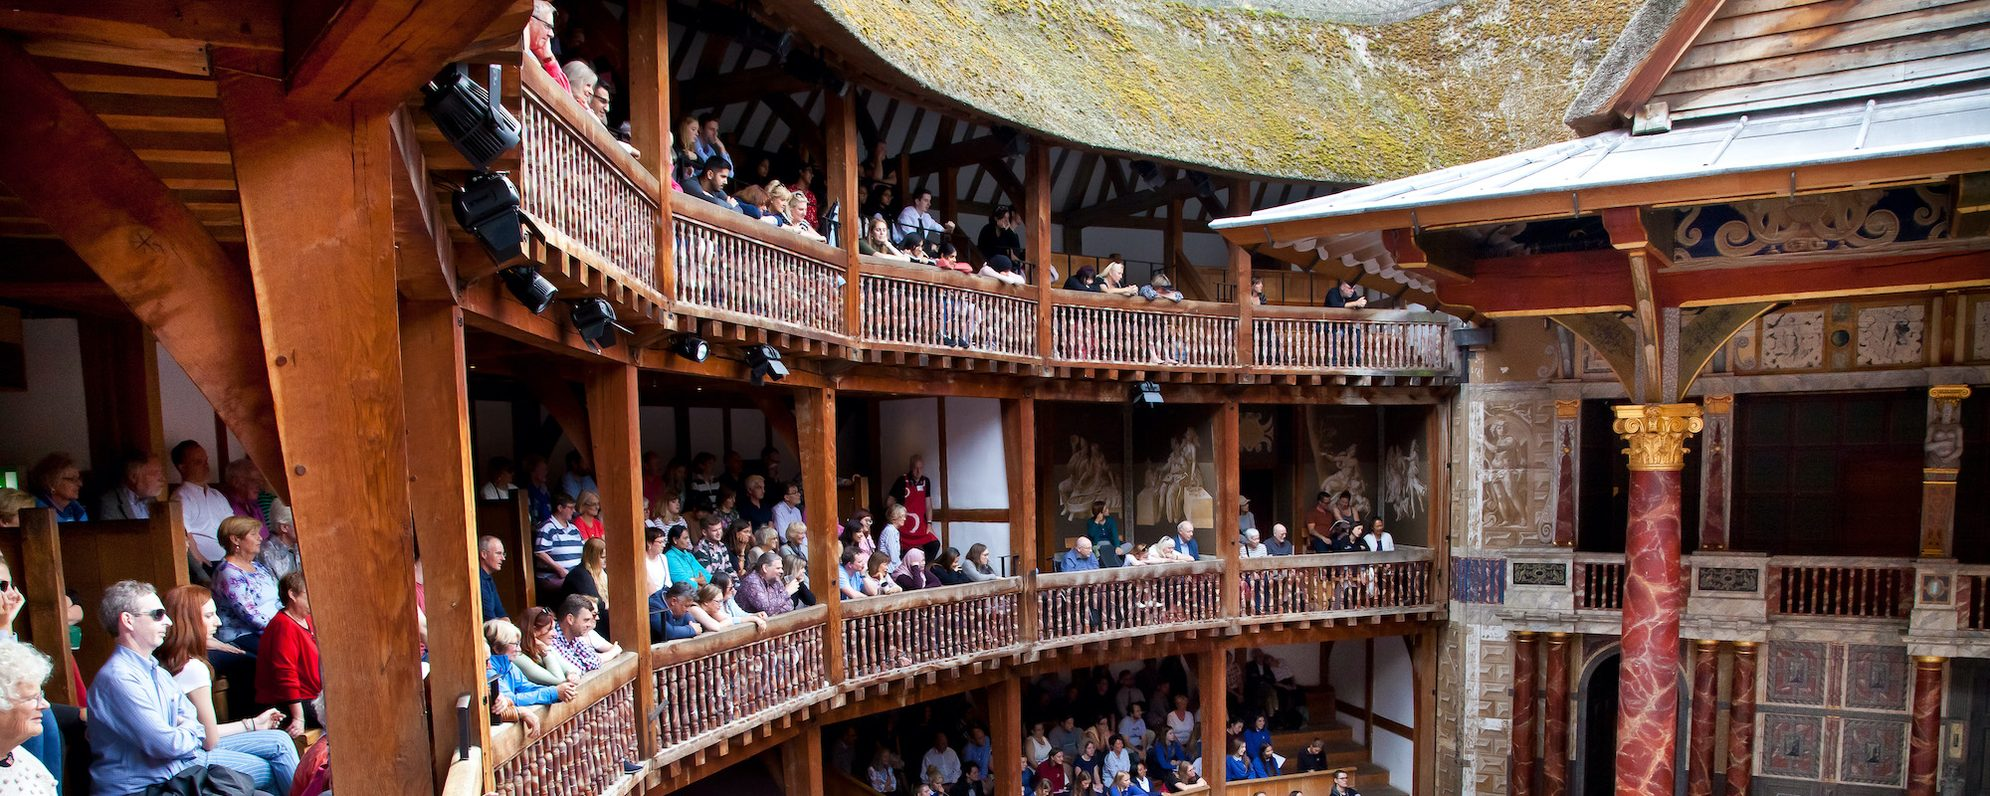 Audience members sit on an outdoor balcony watching a play in the Globe Theatre